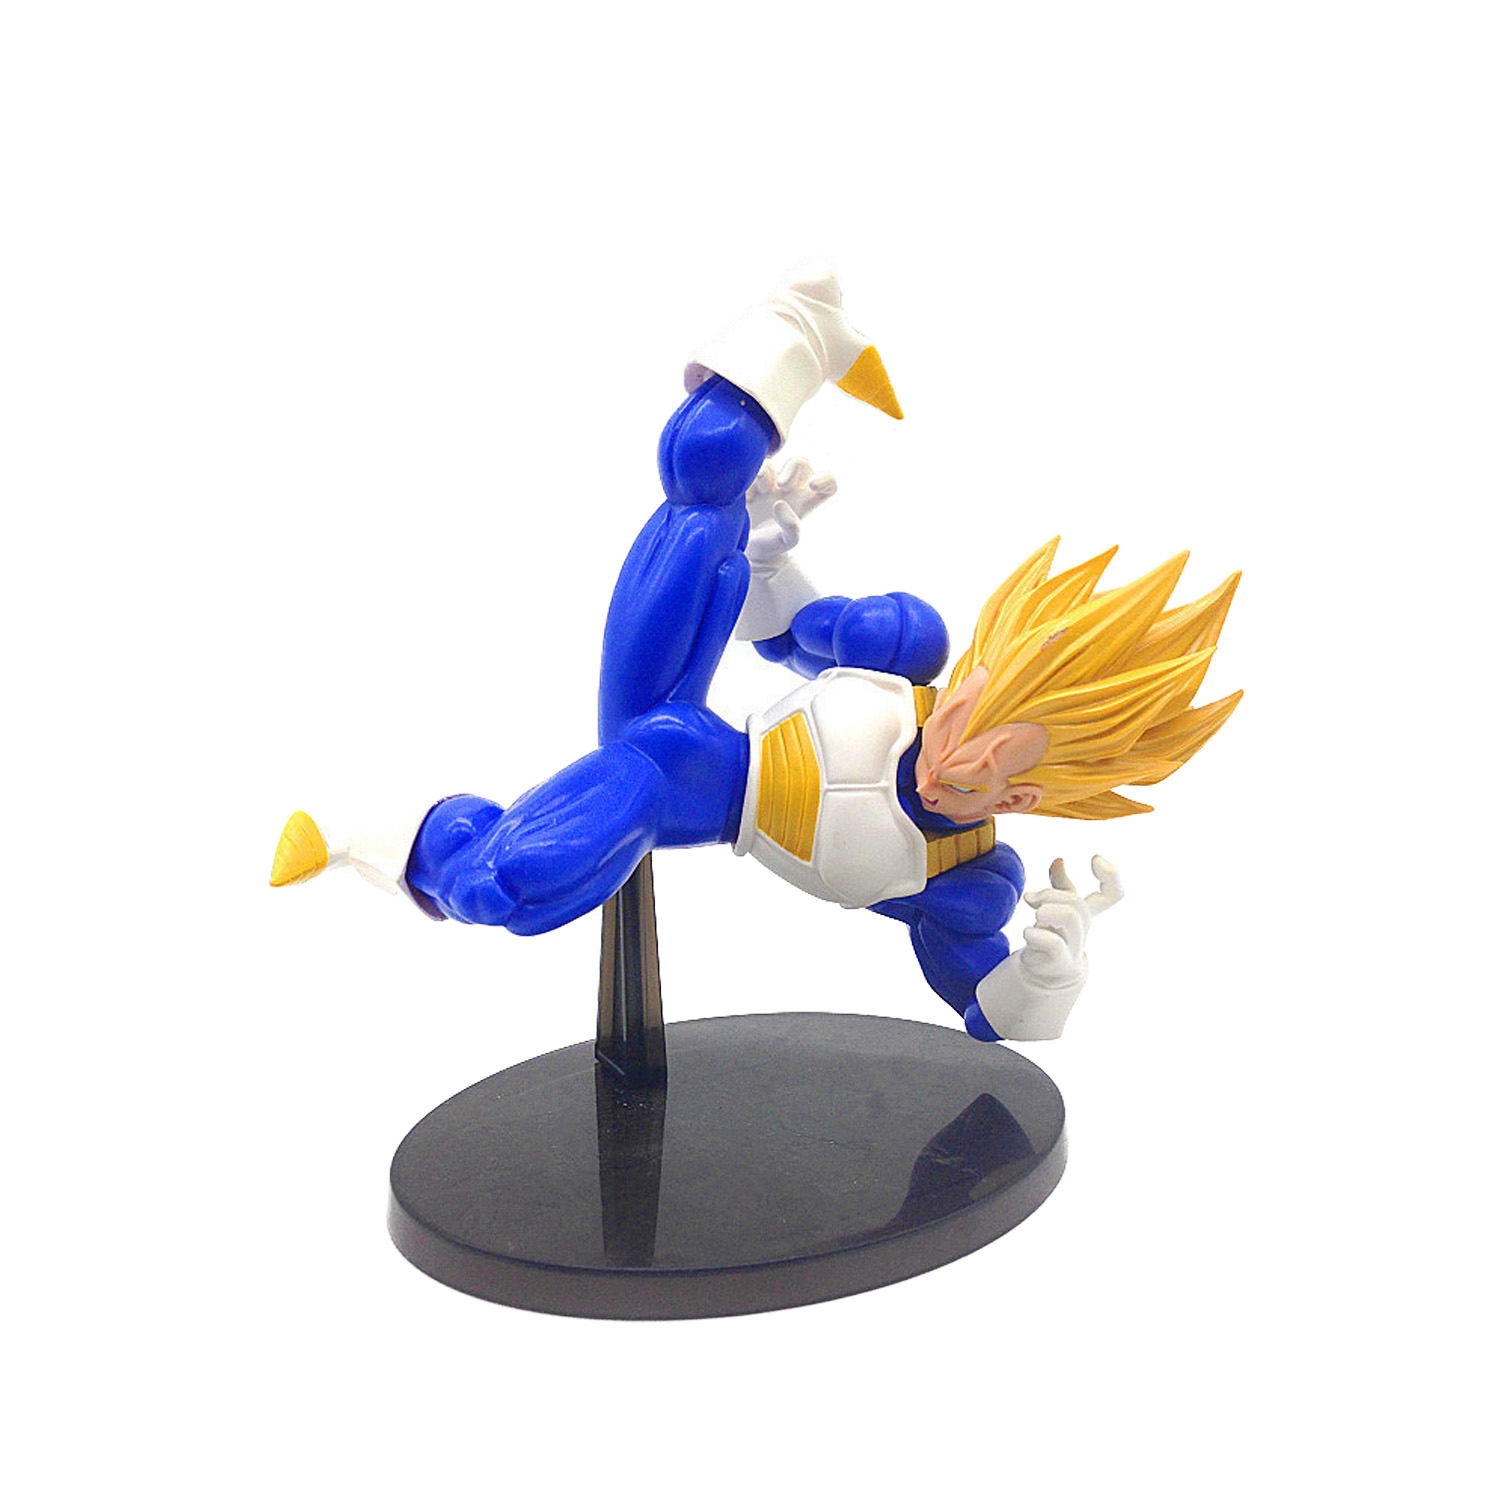 Chanycore Anime Dragon Ball Z 13CM Action Figures Vegeta Tenkaichi Budokai 5 Super Saiyan Toy<br><br>Aliexpress